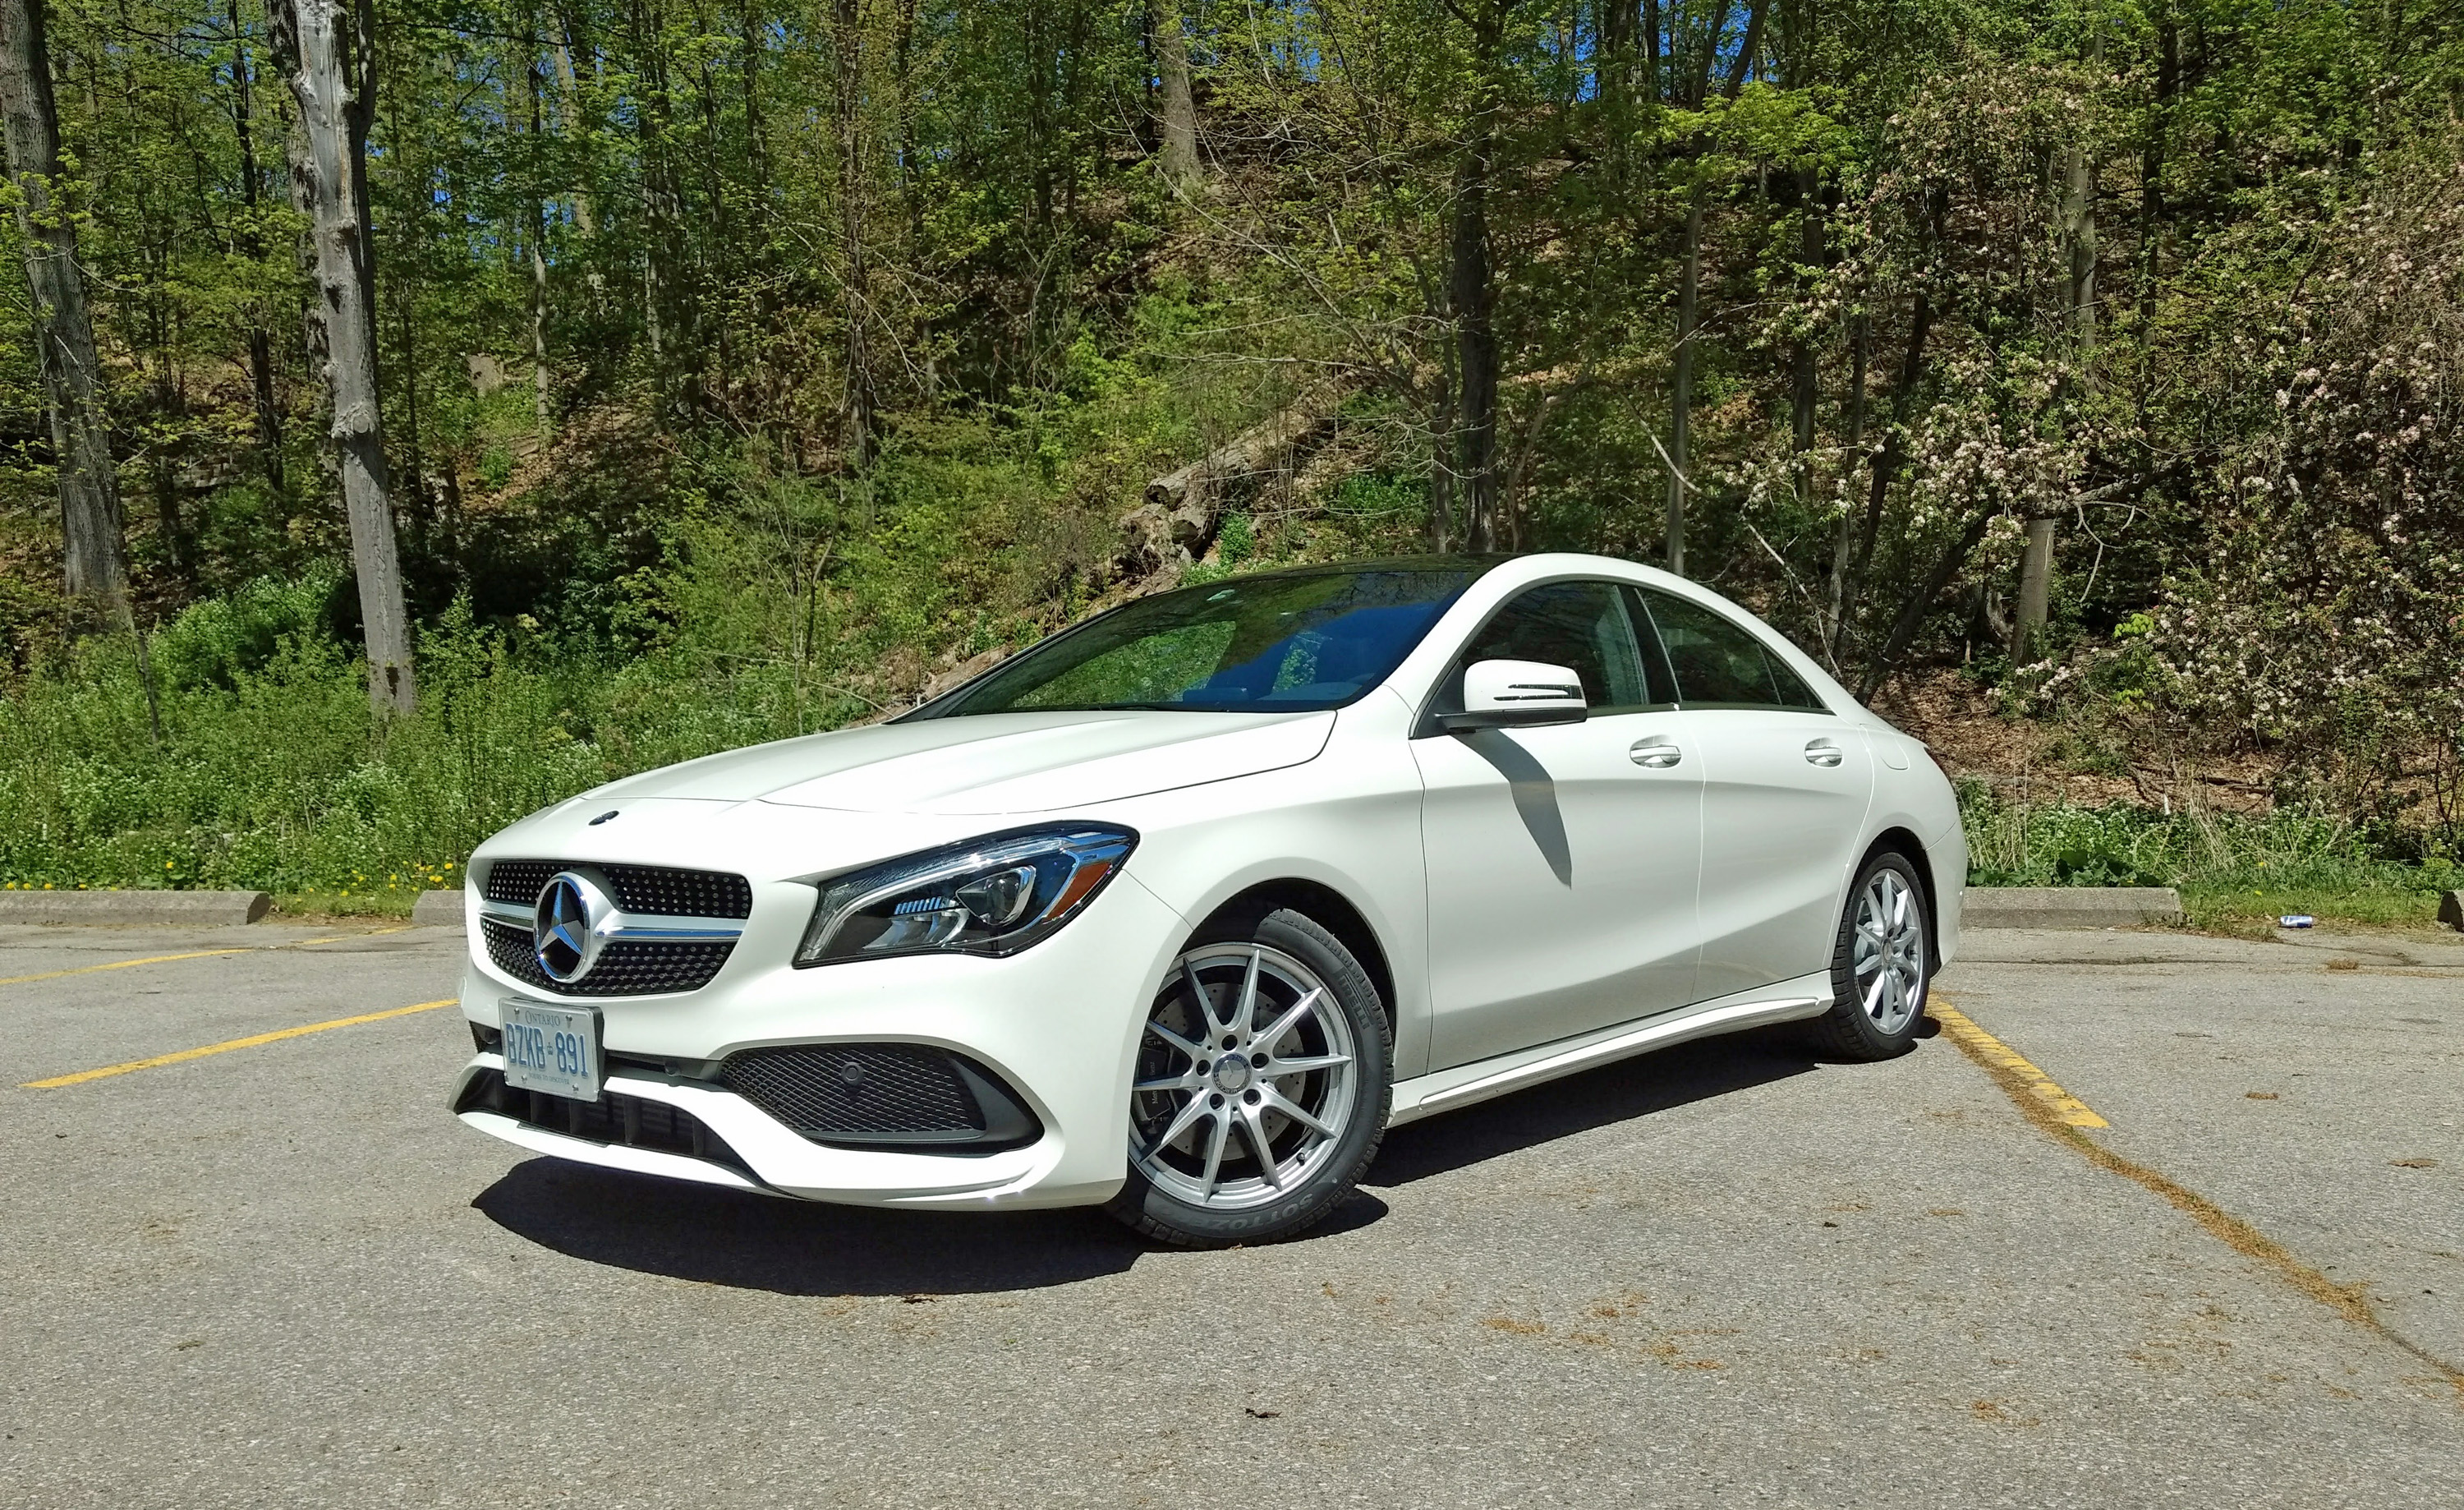 2017 mercedes benz cla 250 4matic review news ForMercedes Benz Cla 250 Review